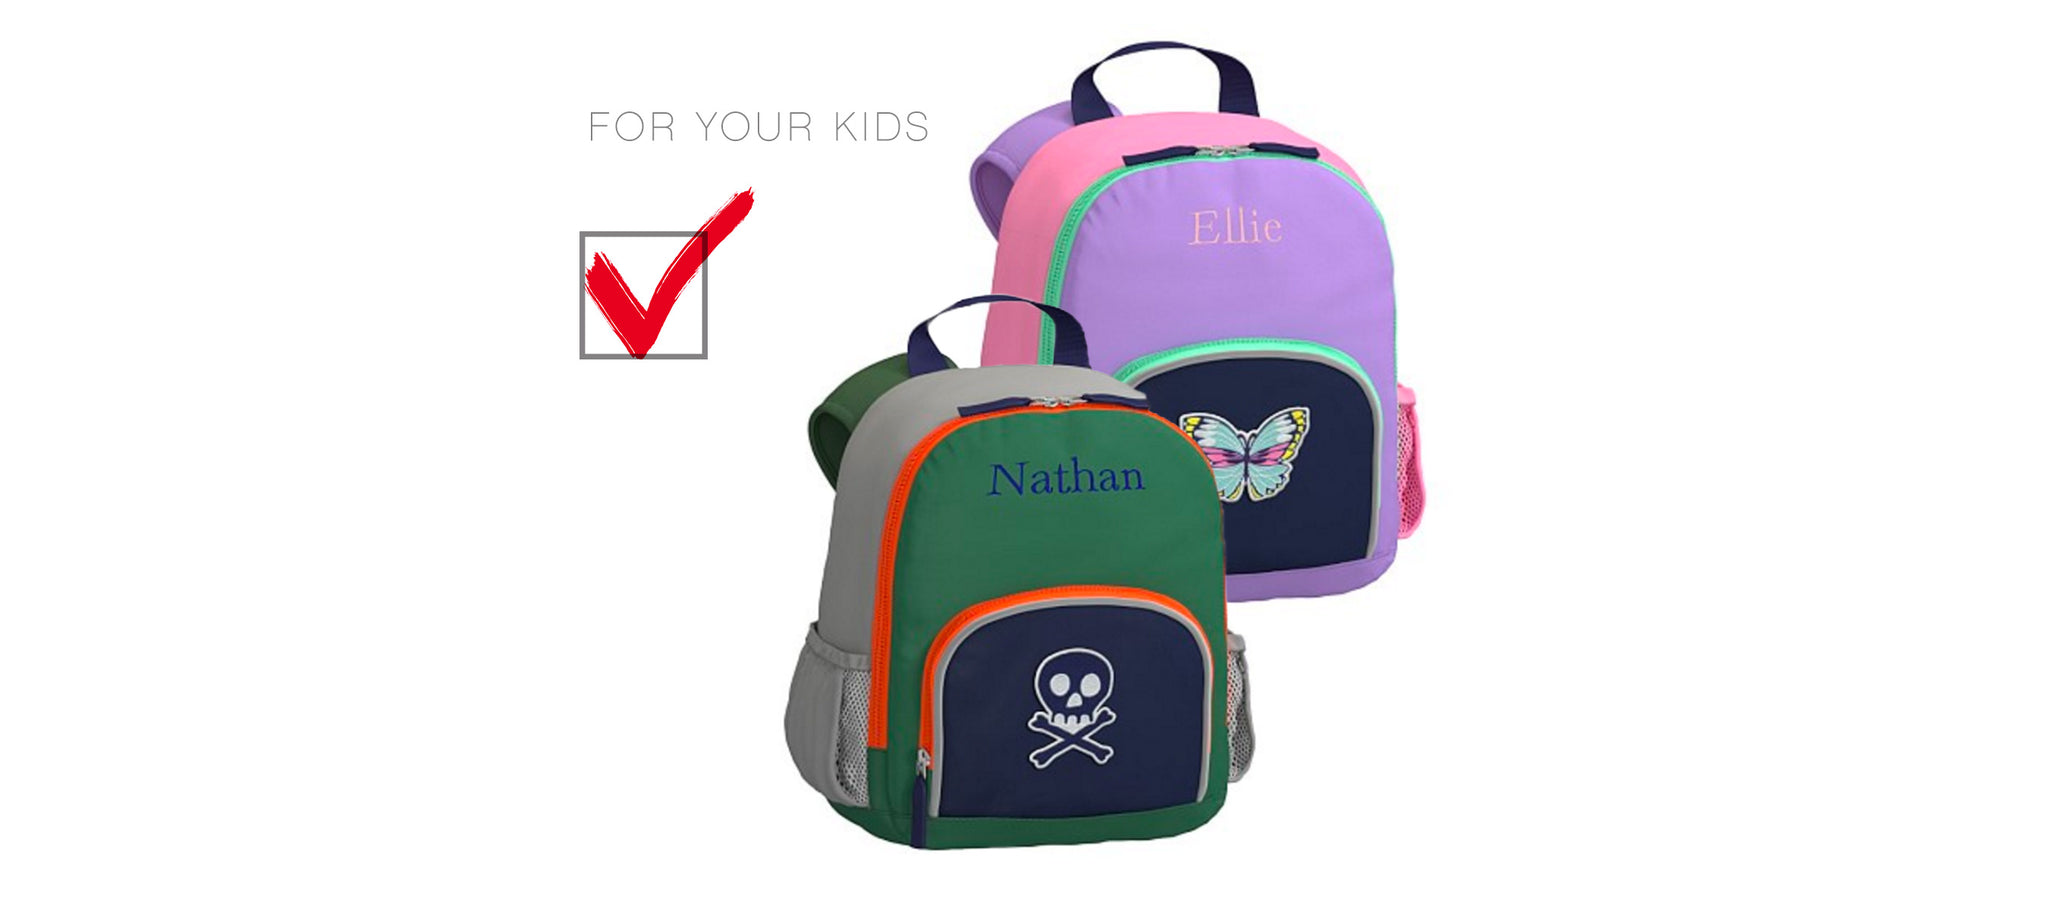 Personalized Pottery Barn Kids Backpacks